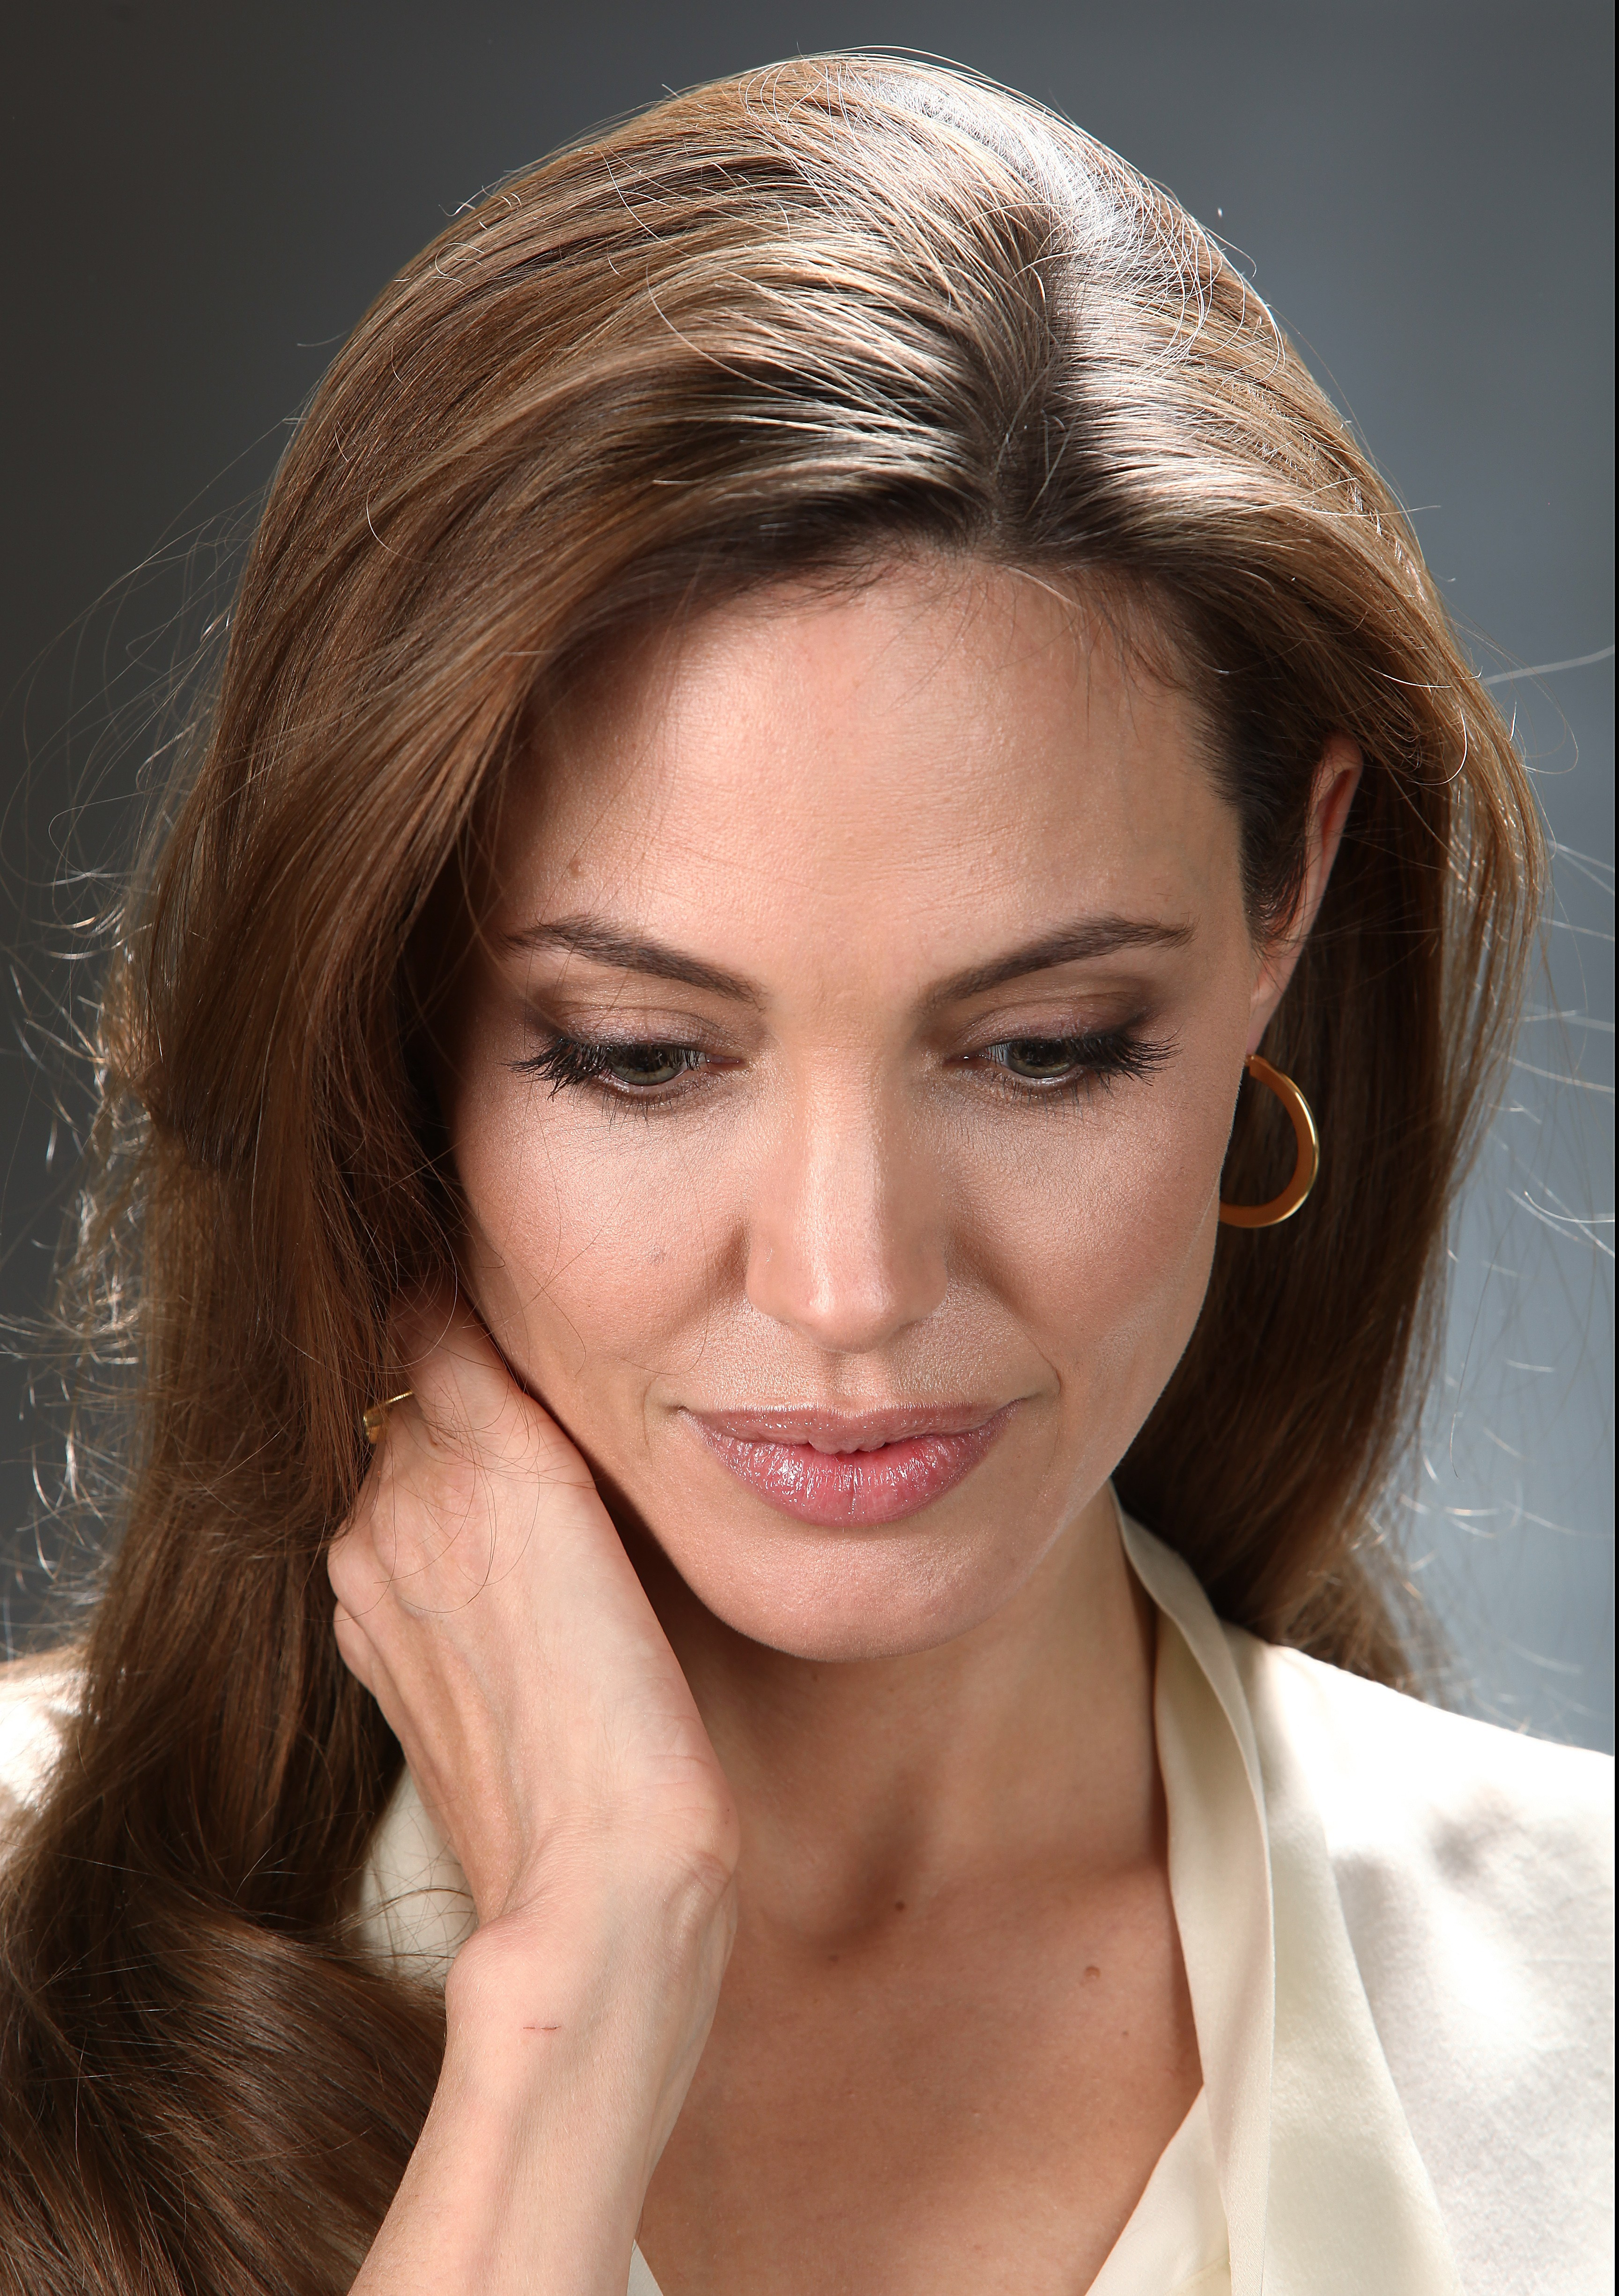 angelina jolie hd pictures - image: 36093 - imgth | free images hosting